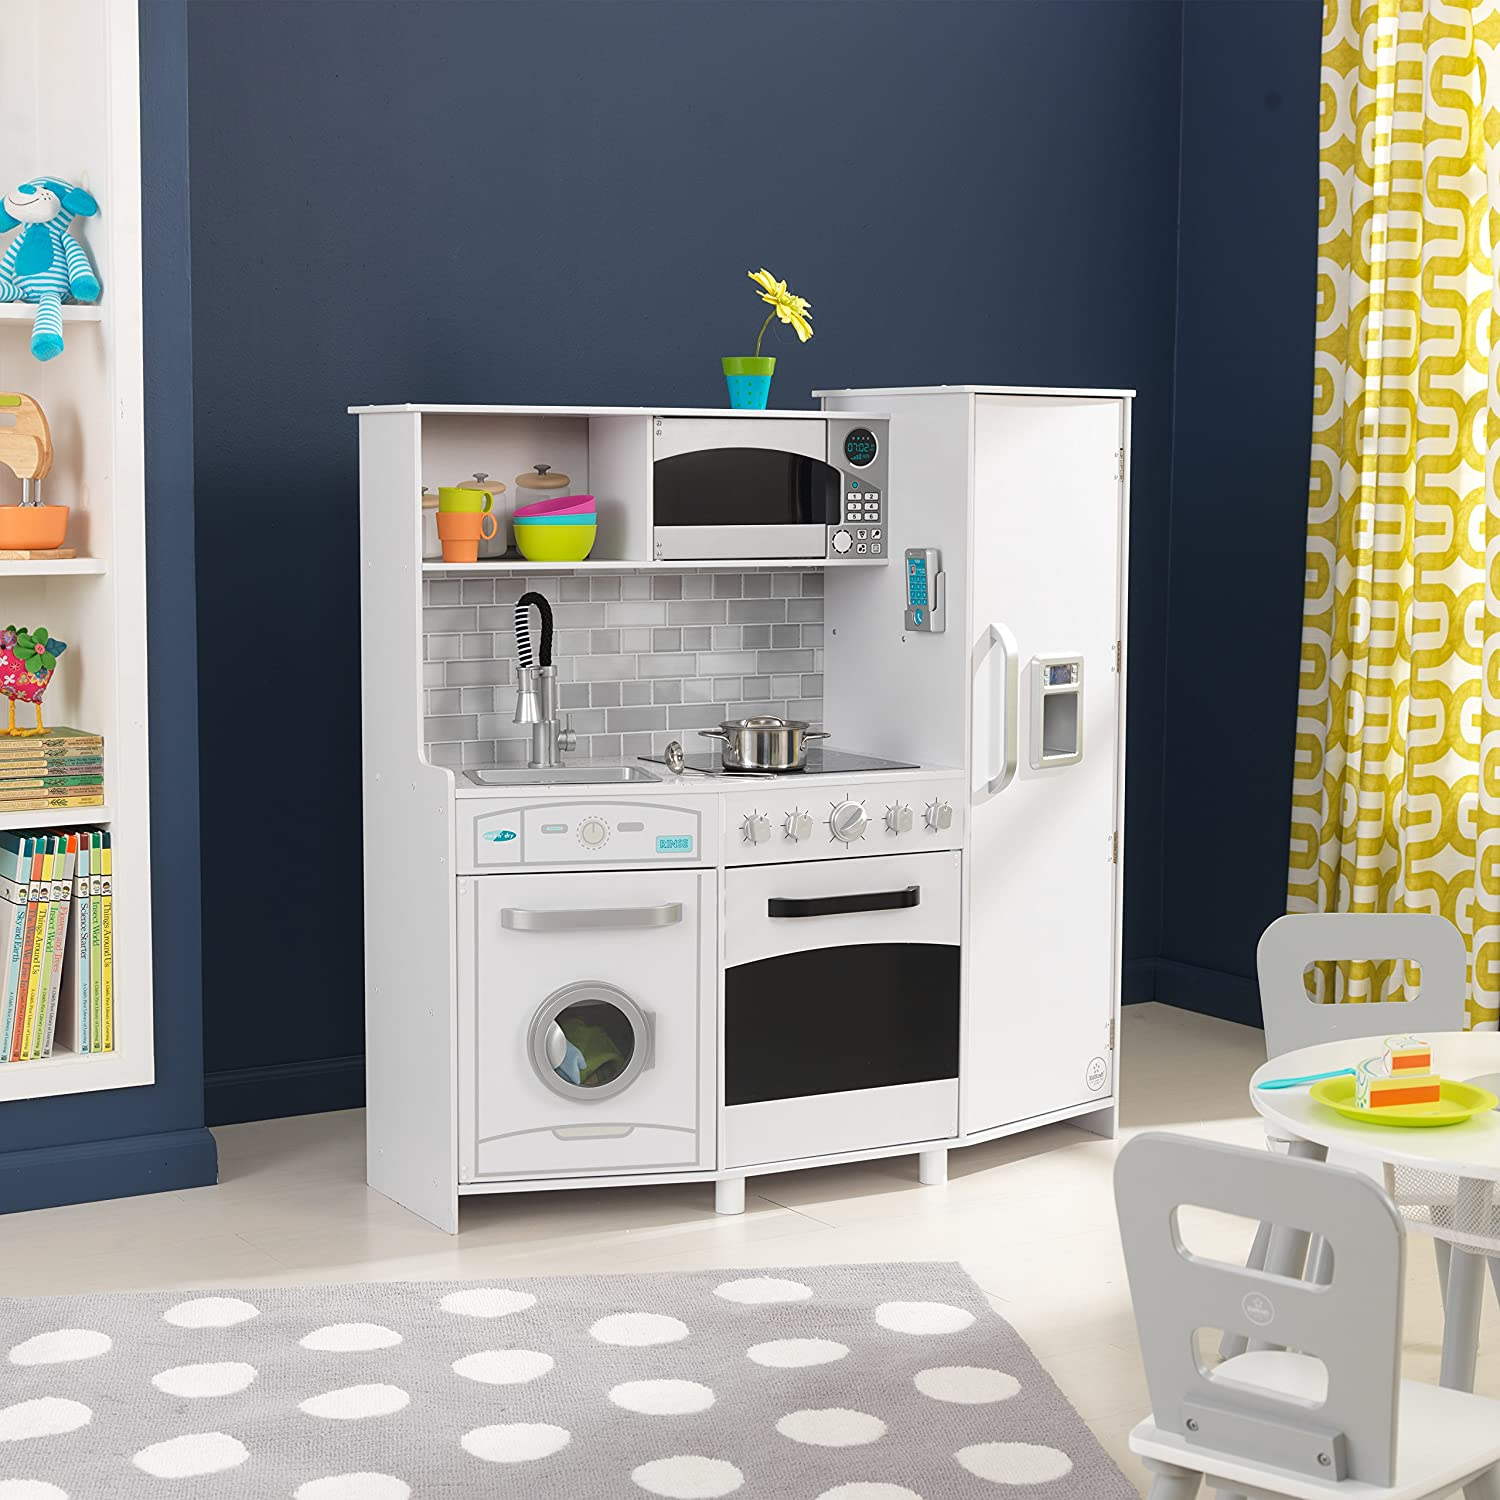 kidkraft kids kitchens playset white black toys games